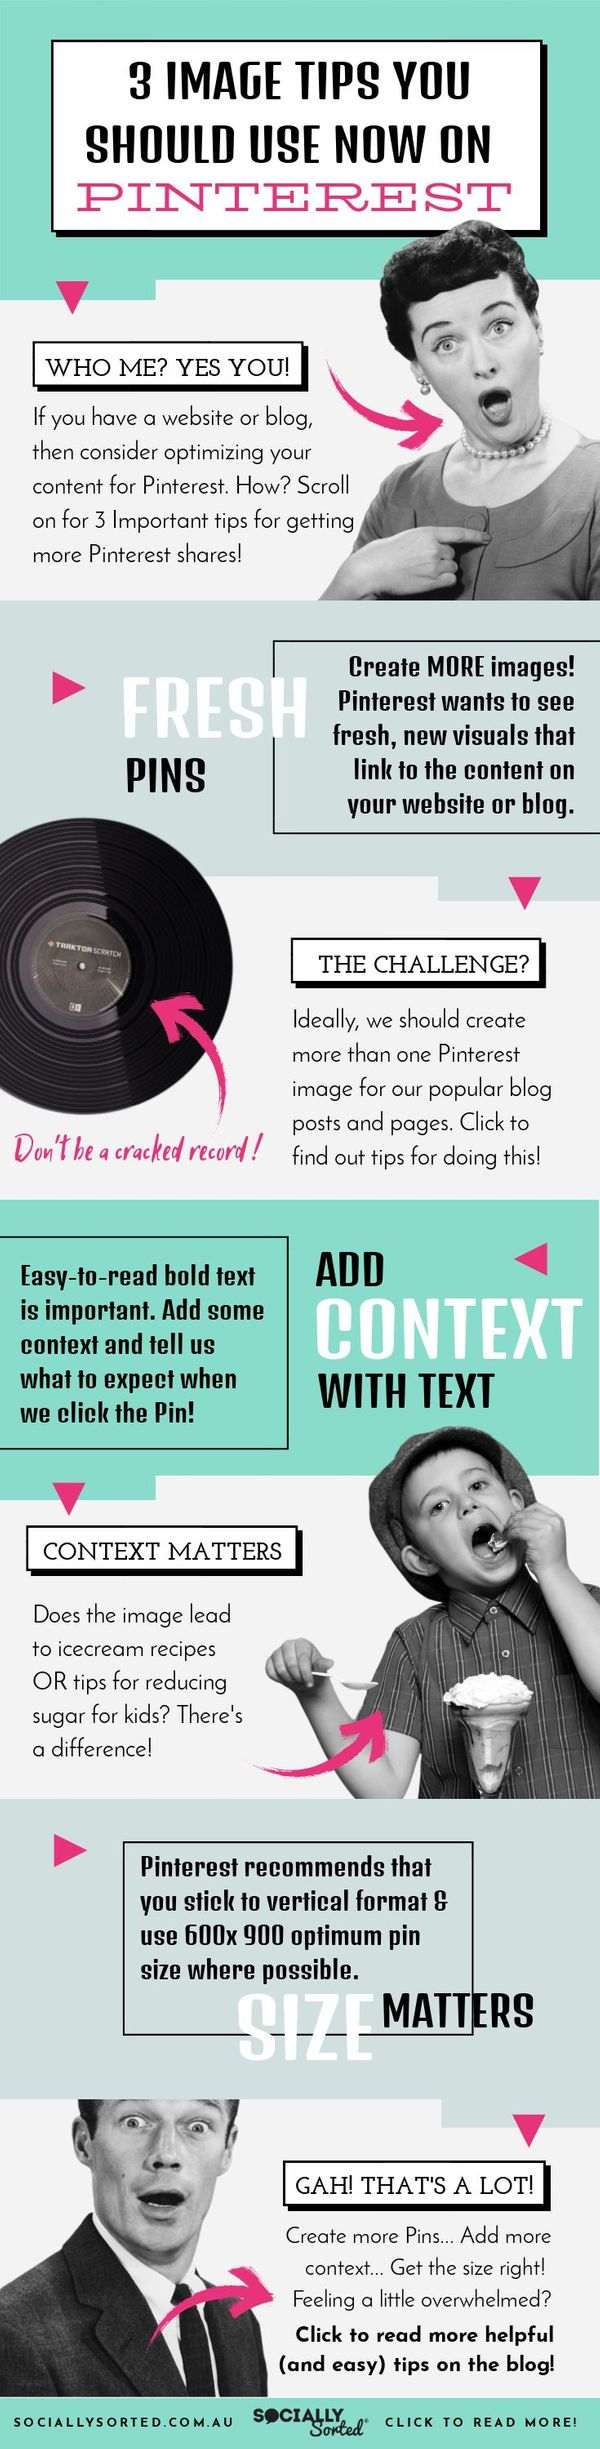 3 Image Tips You Should Use Right Now on Pinterest - Infographic